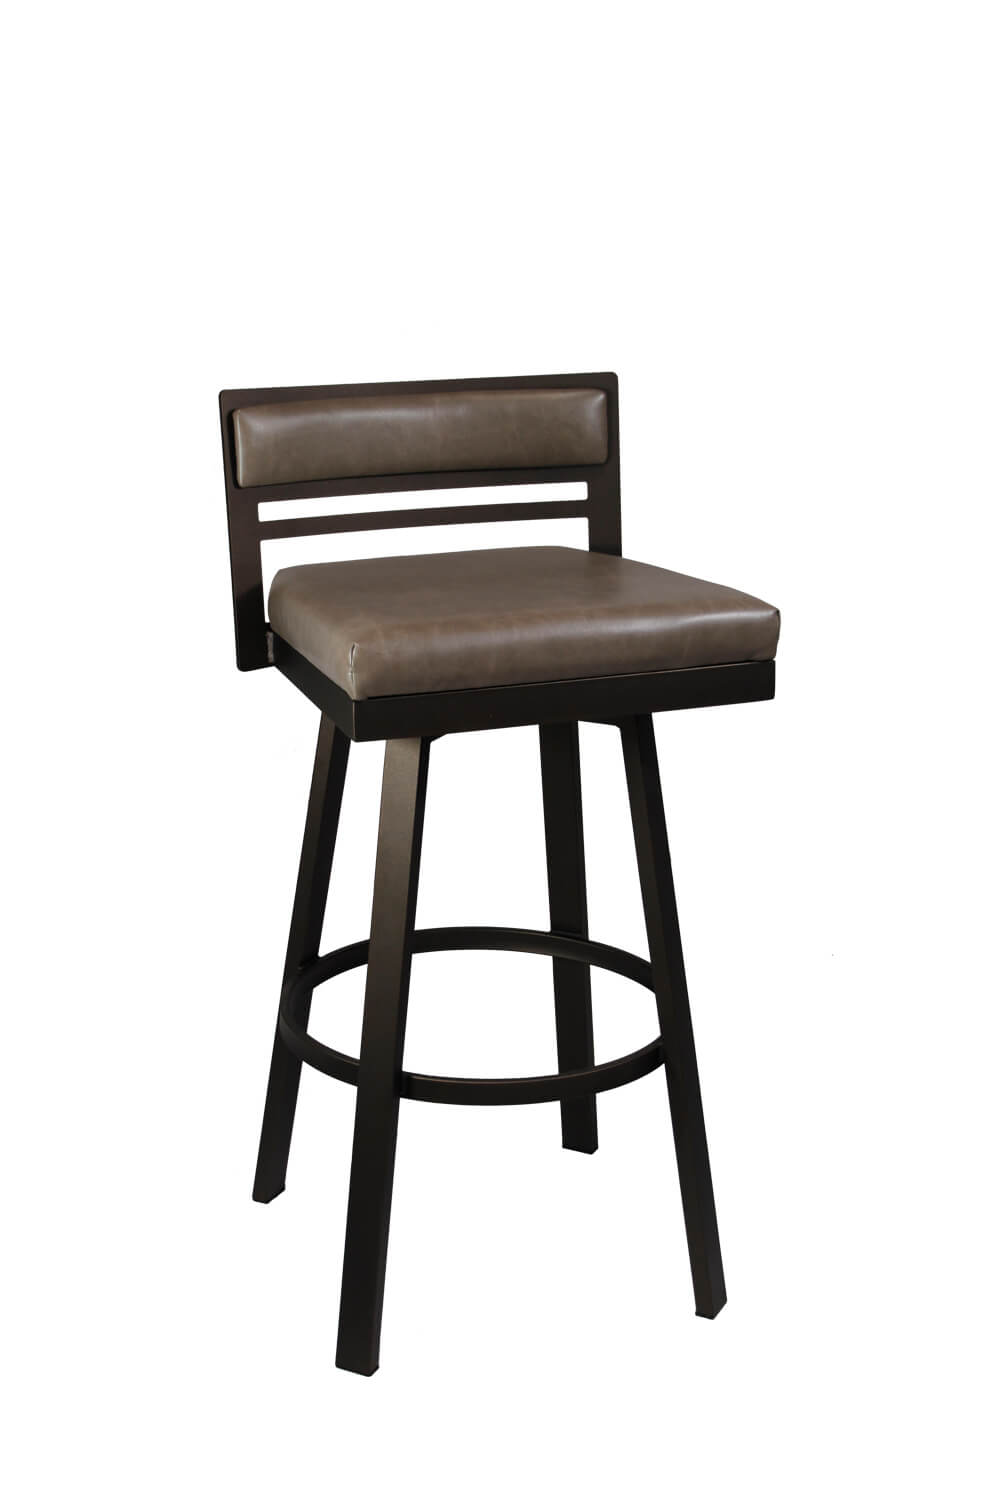 Excellent Carson Swivel Stool With Low Back Machost Co Dining Chair Design Ideas Machostcouk